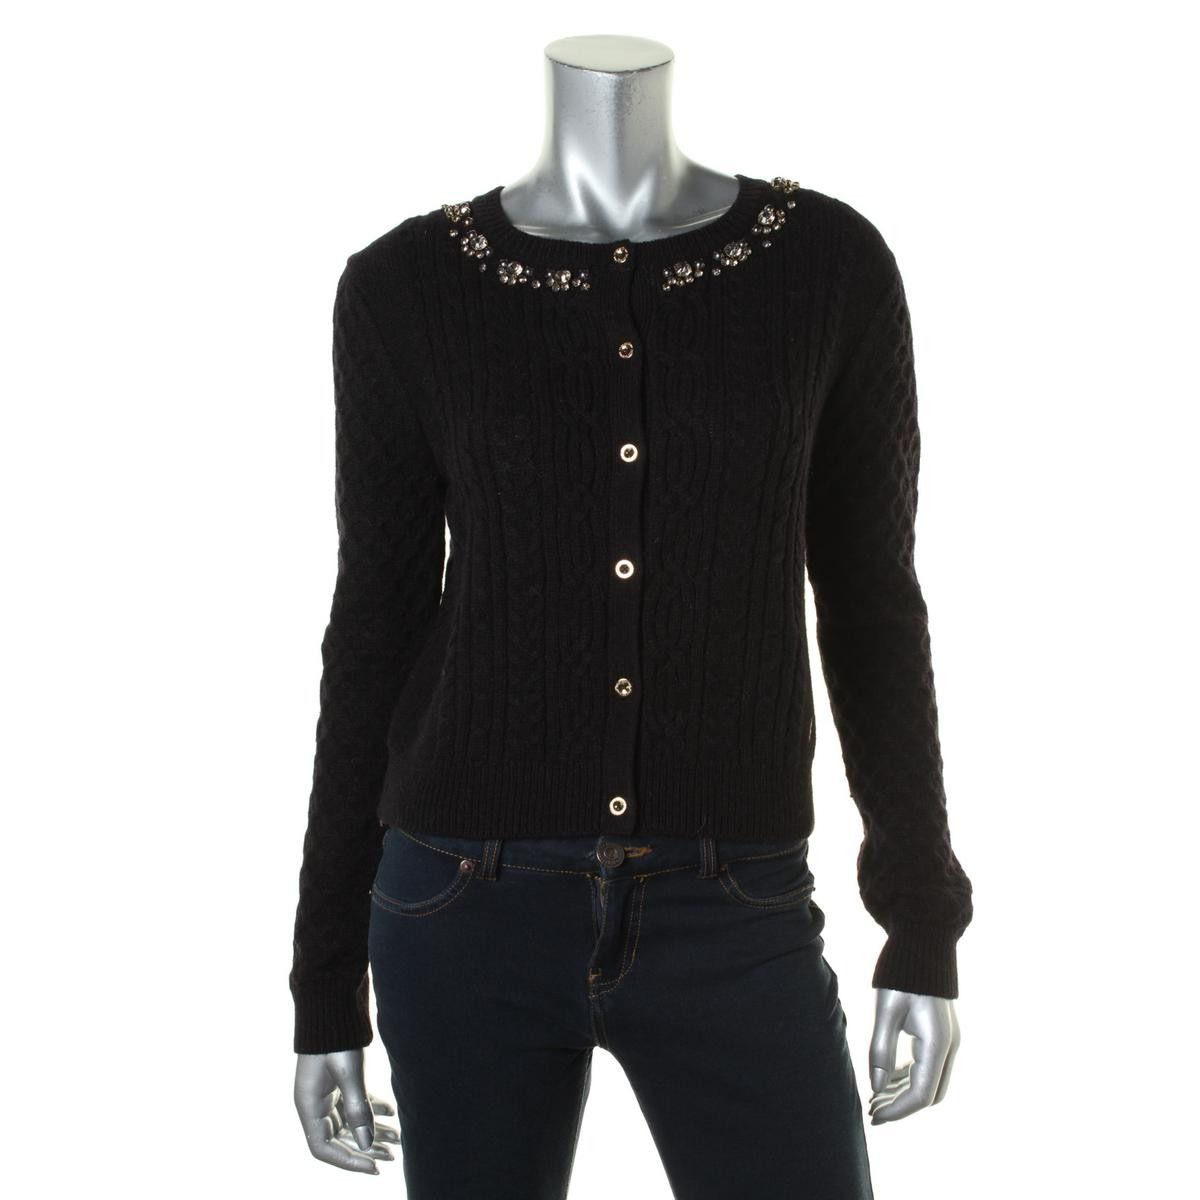 Juicy Couture Black Label Womens Cable Knit Embellished Cardigan ...